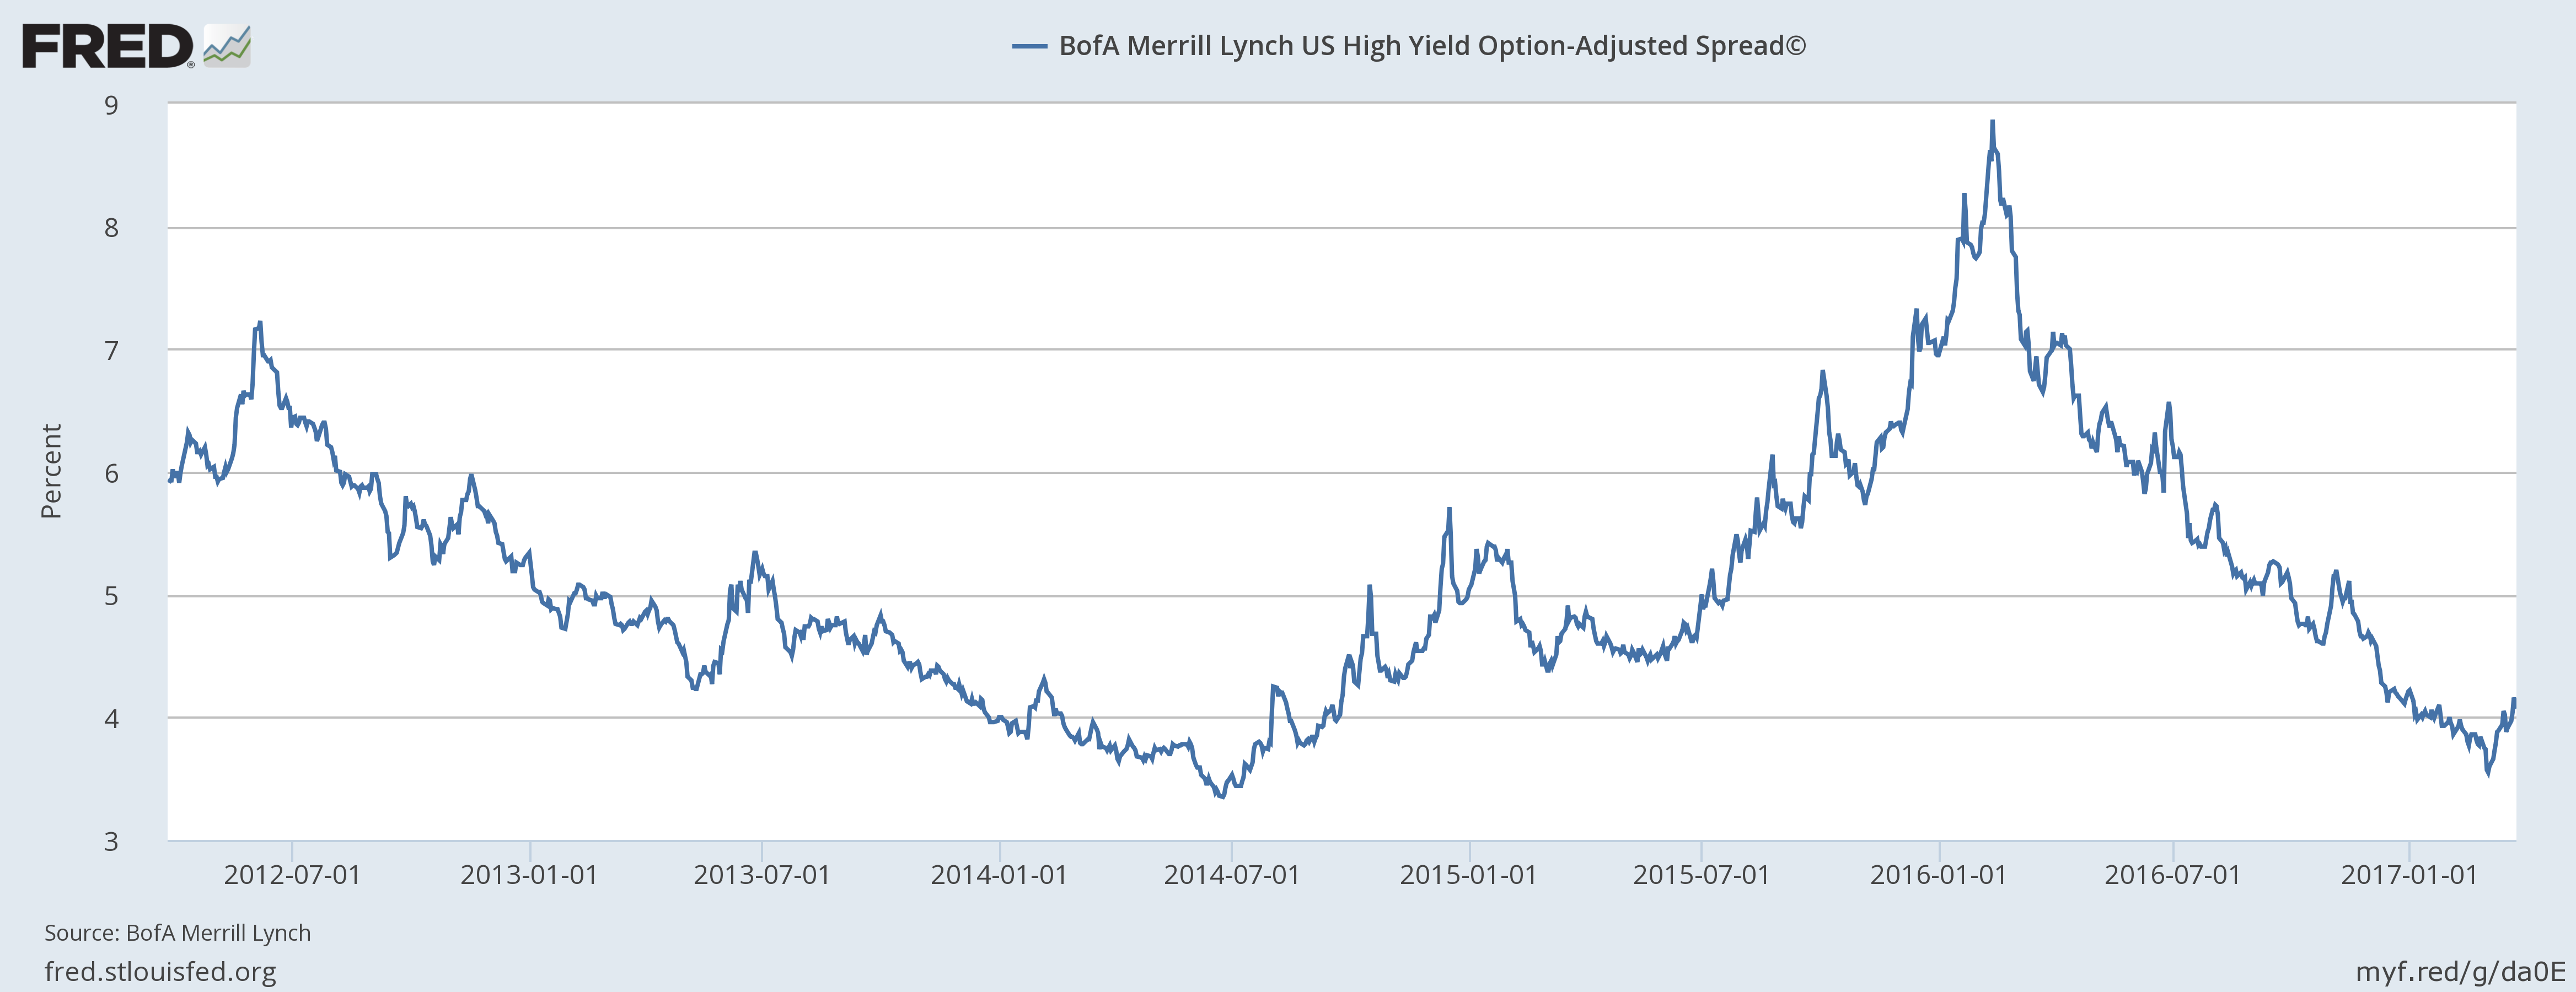 BofA Merril Lynch US High Yield Option-Adjusted Spread, 2012 - 2017